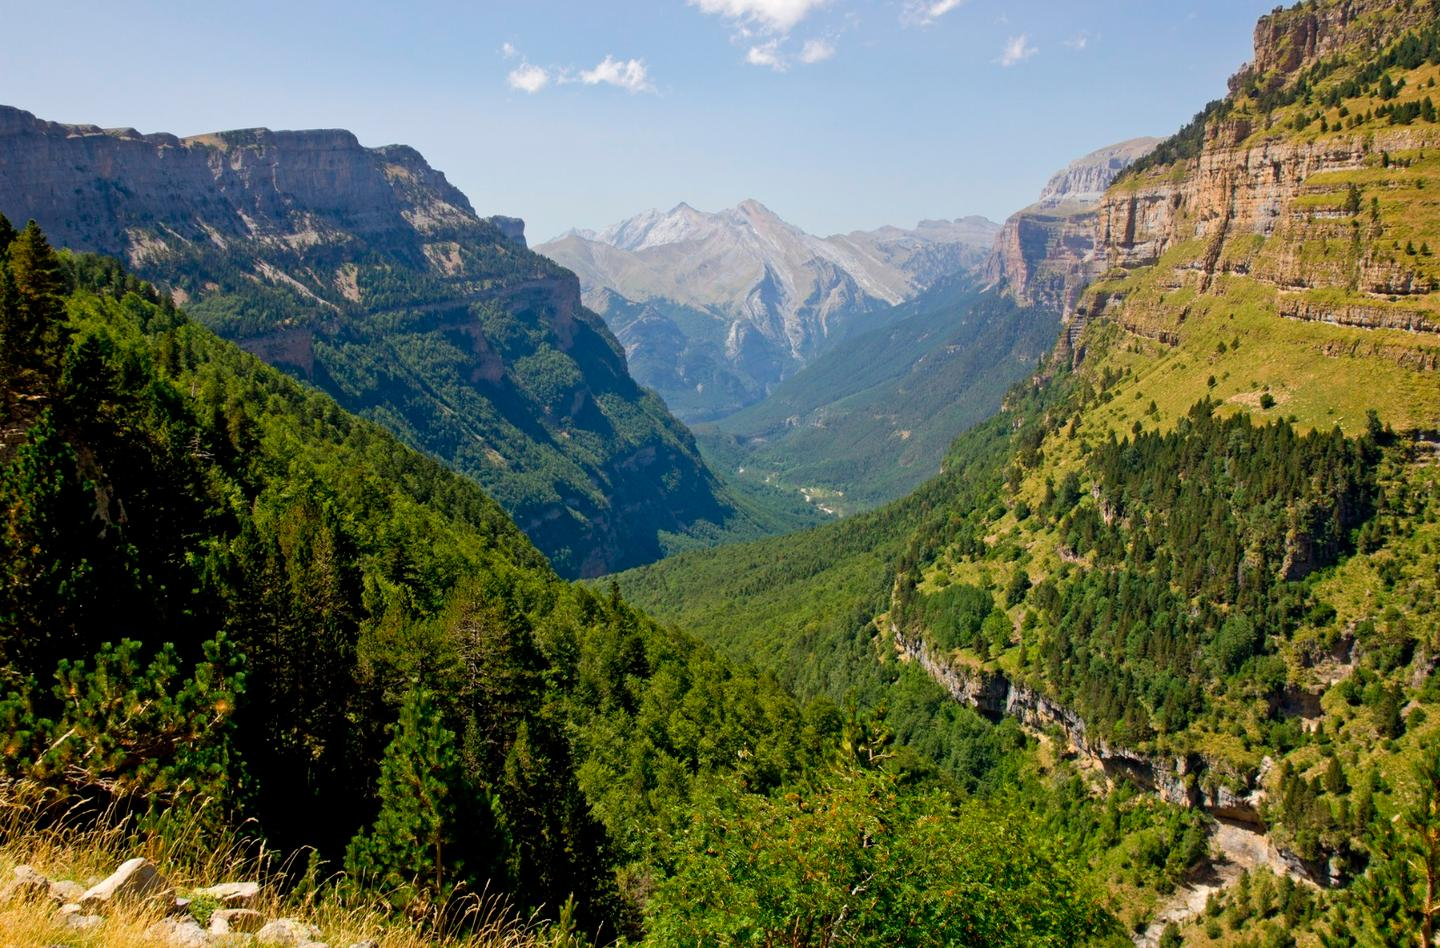 Researchers examined samples taken from trees in the Spanish Pyrenees and found that faster-growing trees tend to die younger than those that grew slower